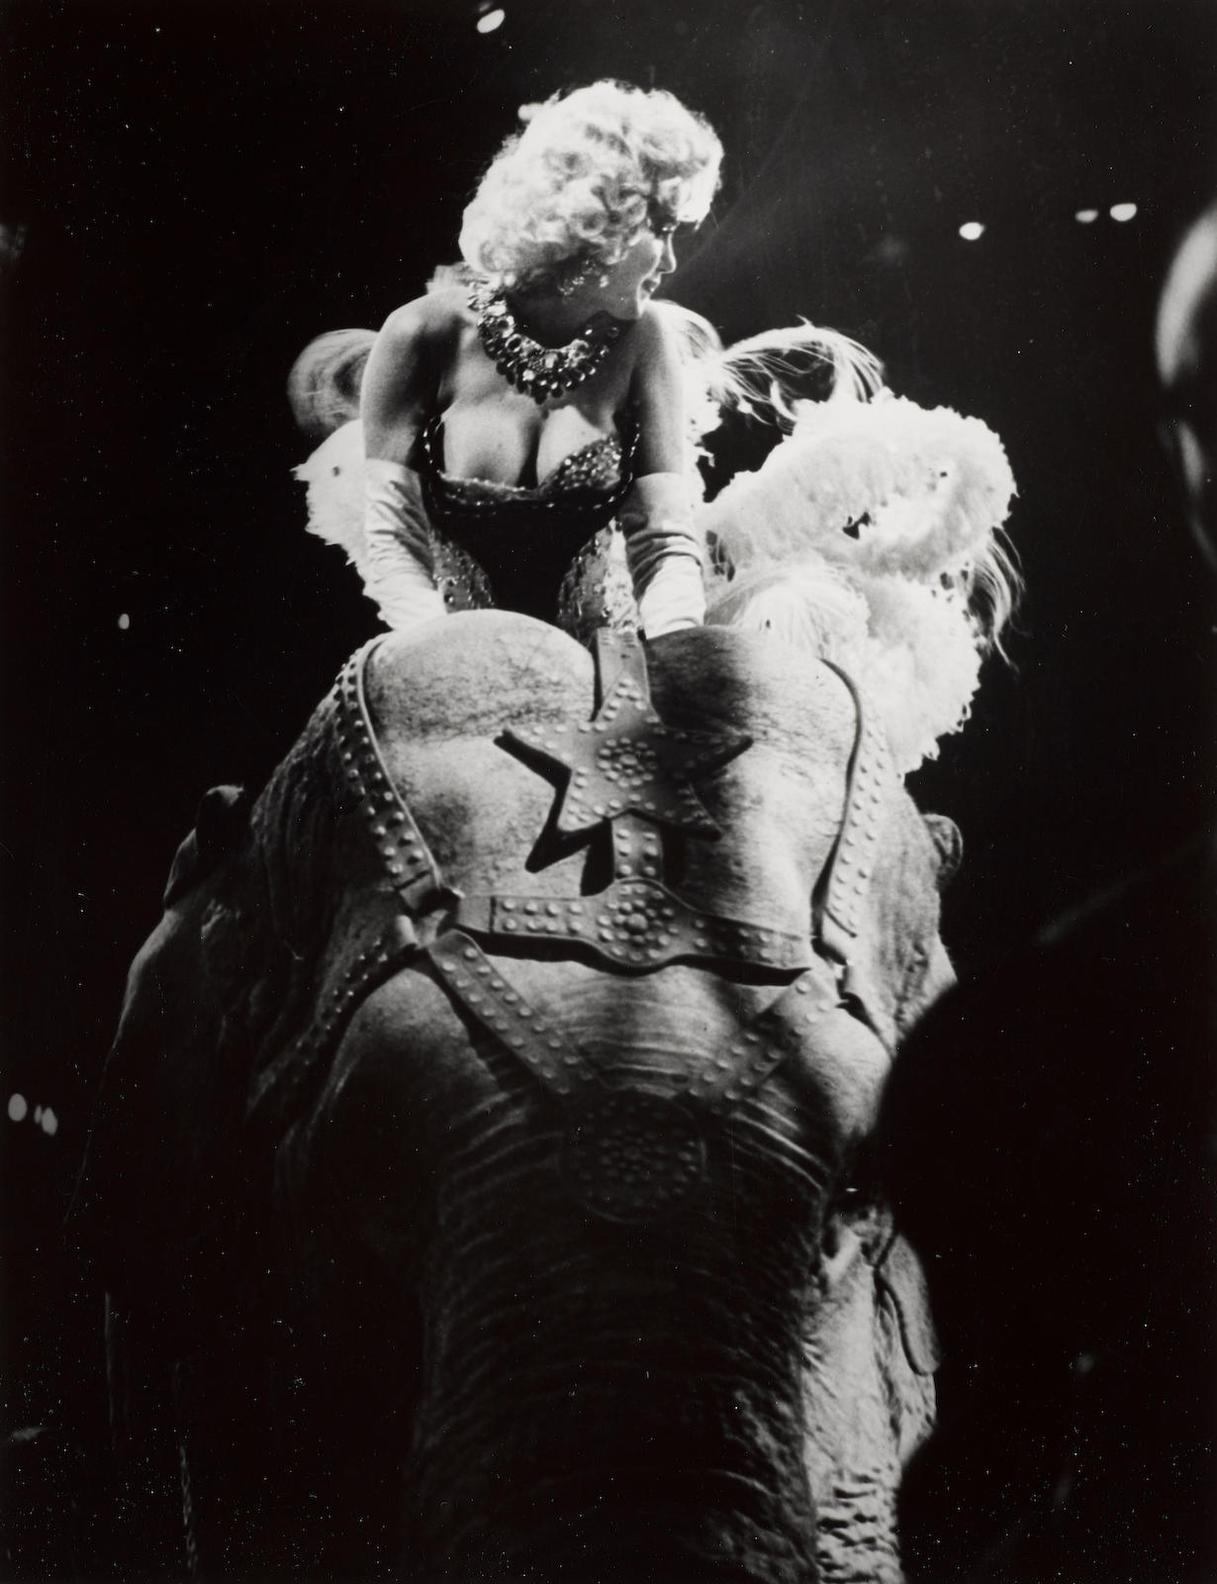 Weegee-Marilyn Riding A Pink Elephant, Opening Night Of Ringling Brothers Circus, Madison Square Garden, New York City, March 30-1955